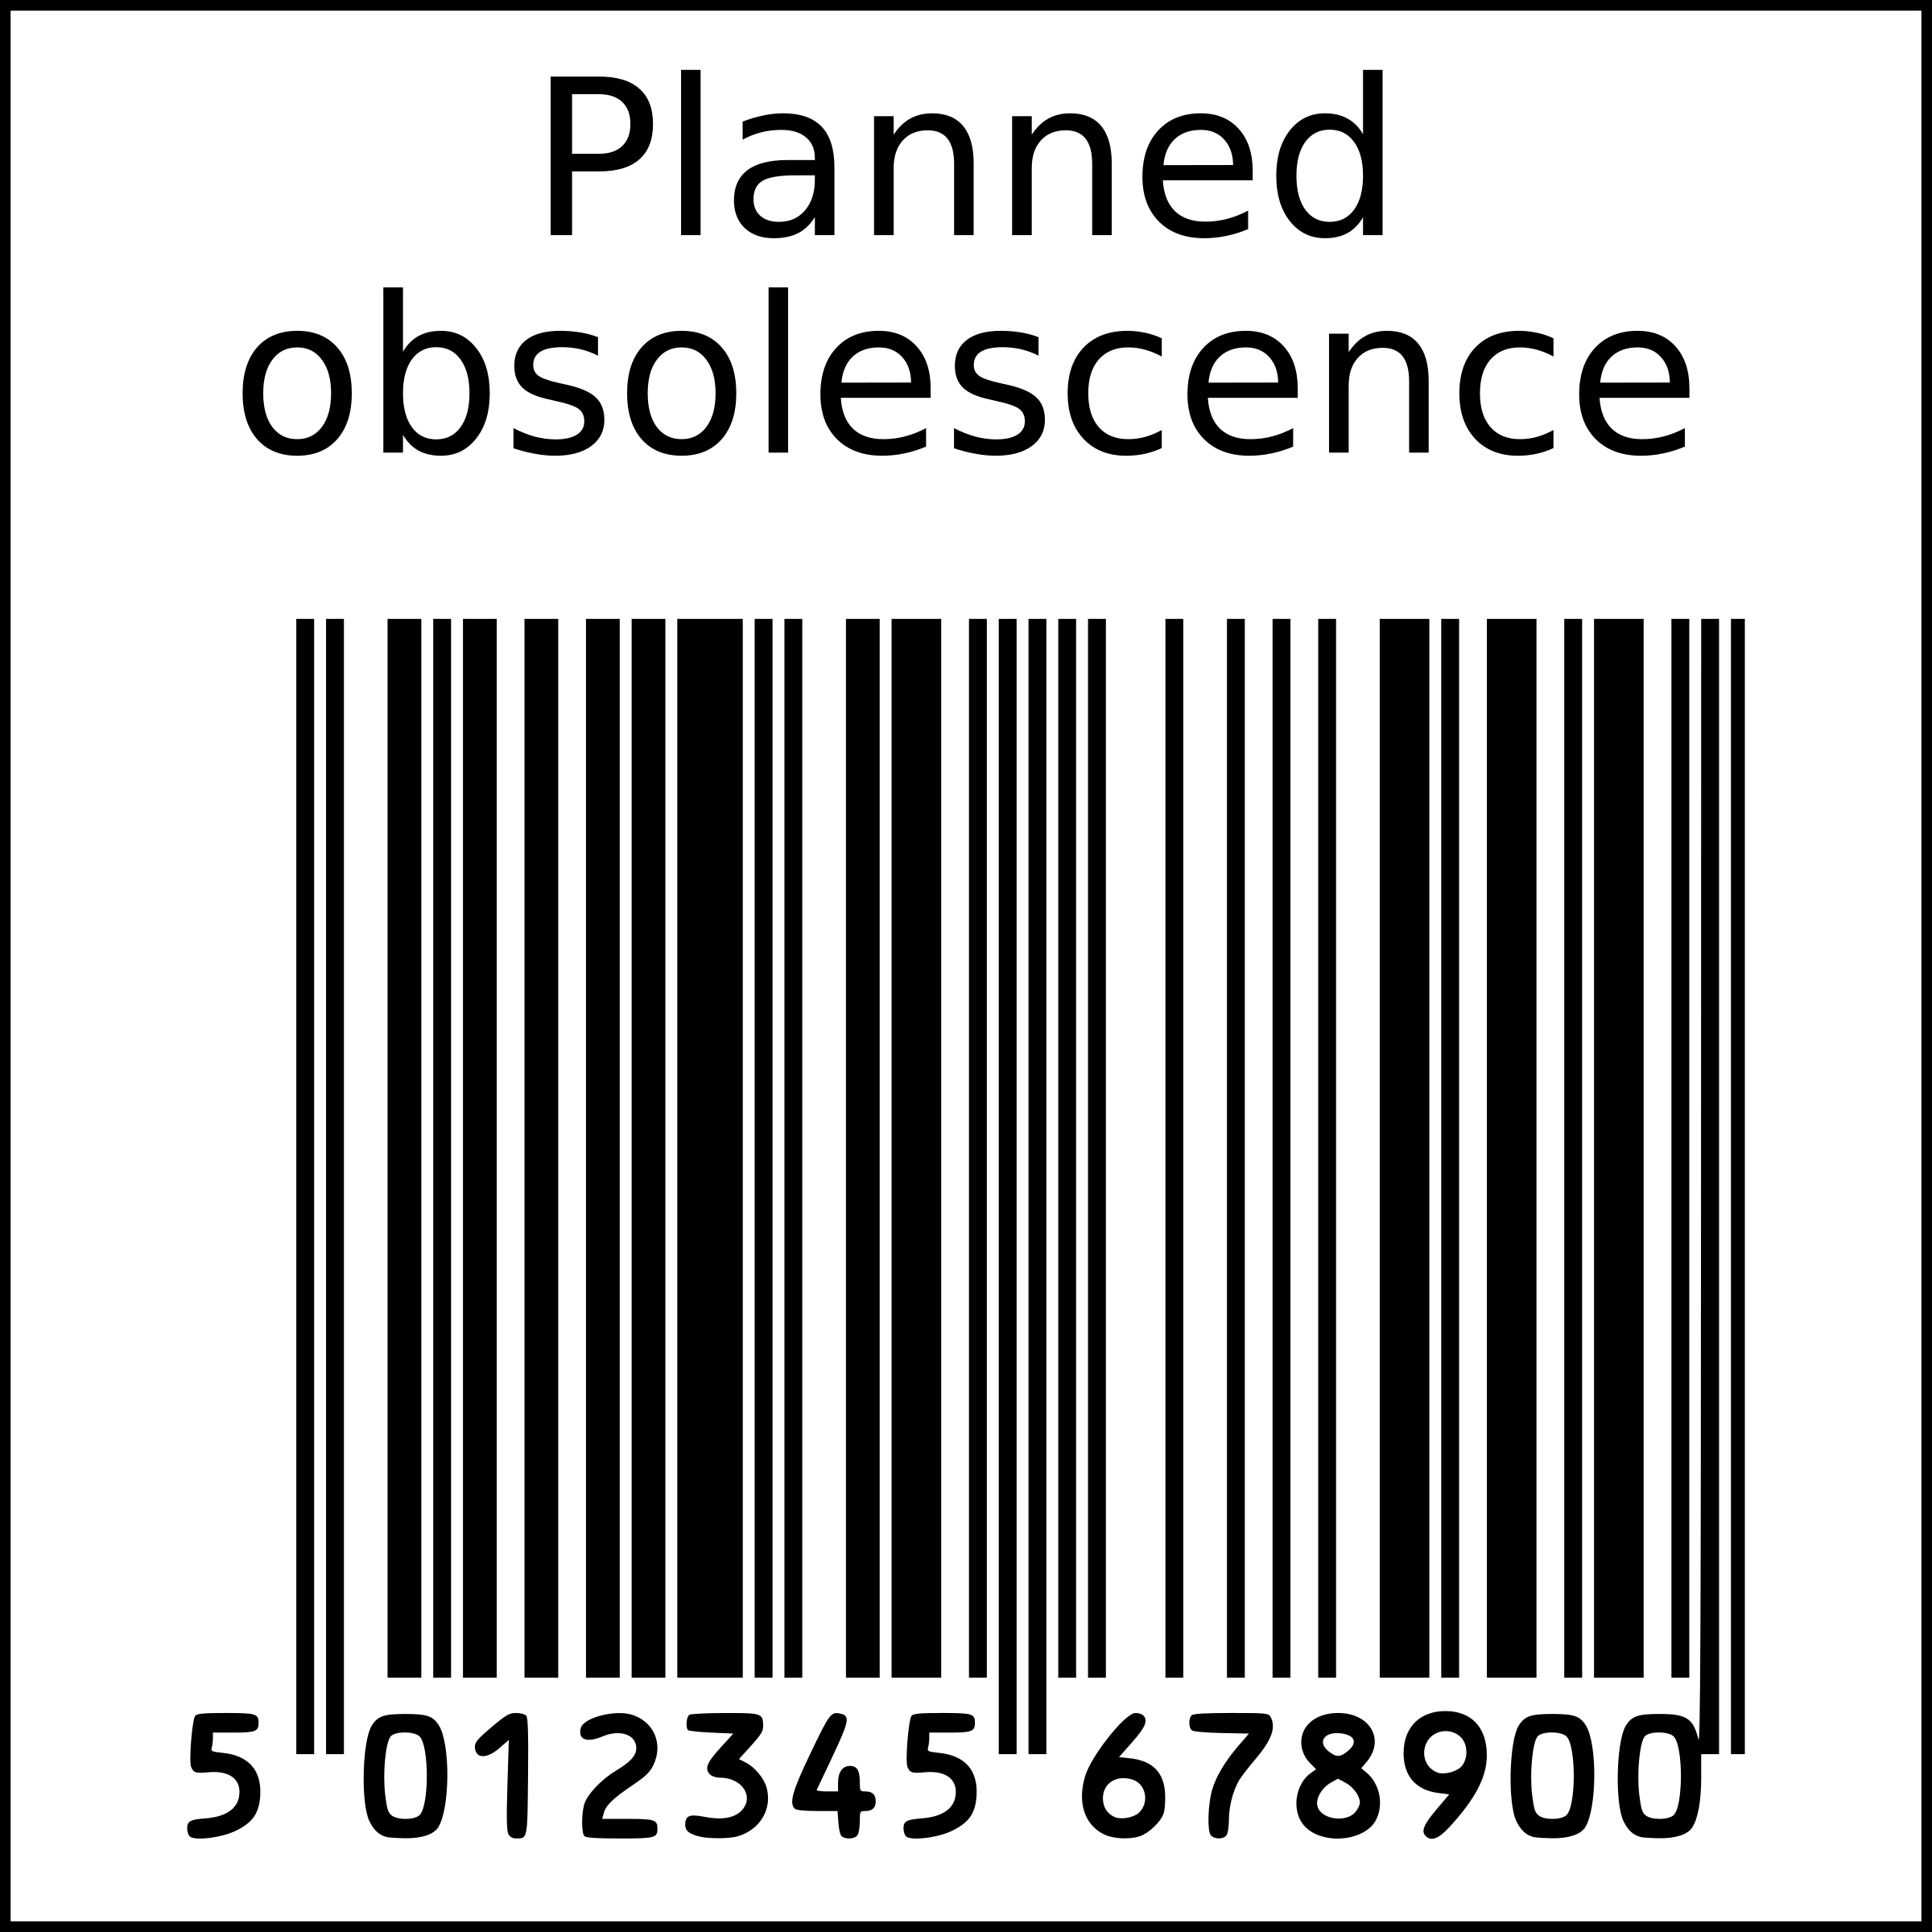 Planned obsolescence barcode in squarre by sodruls